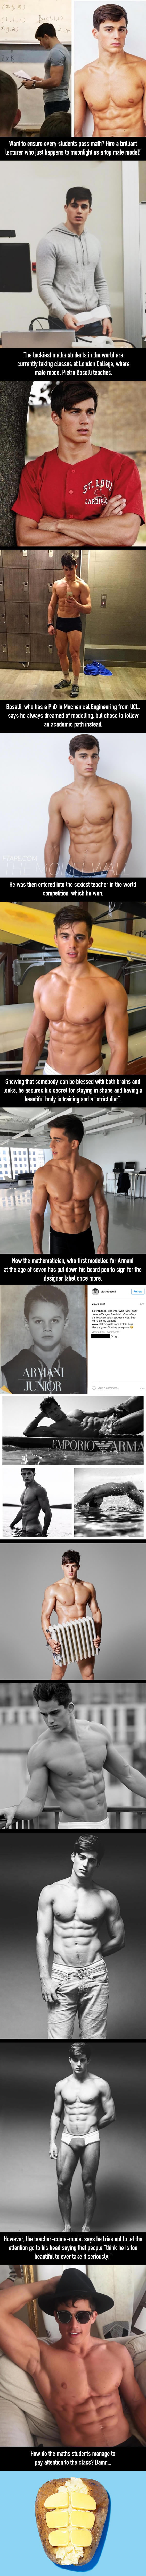 'World's hottest maths teacher' Pietro Boselli who wowed adoring students is now modelling for Armani